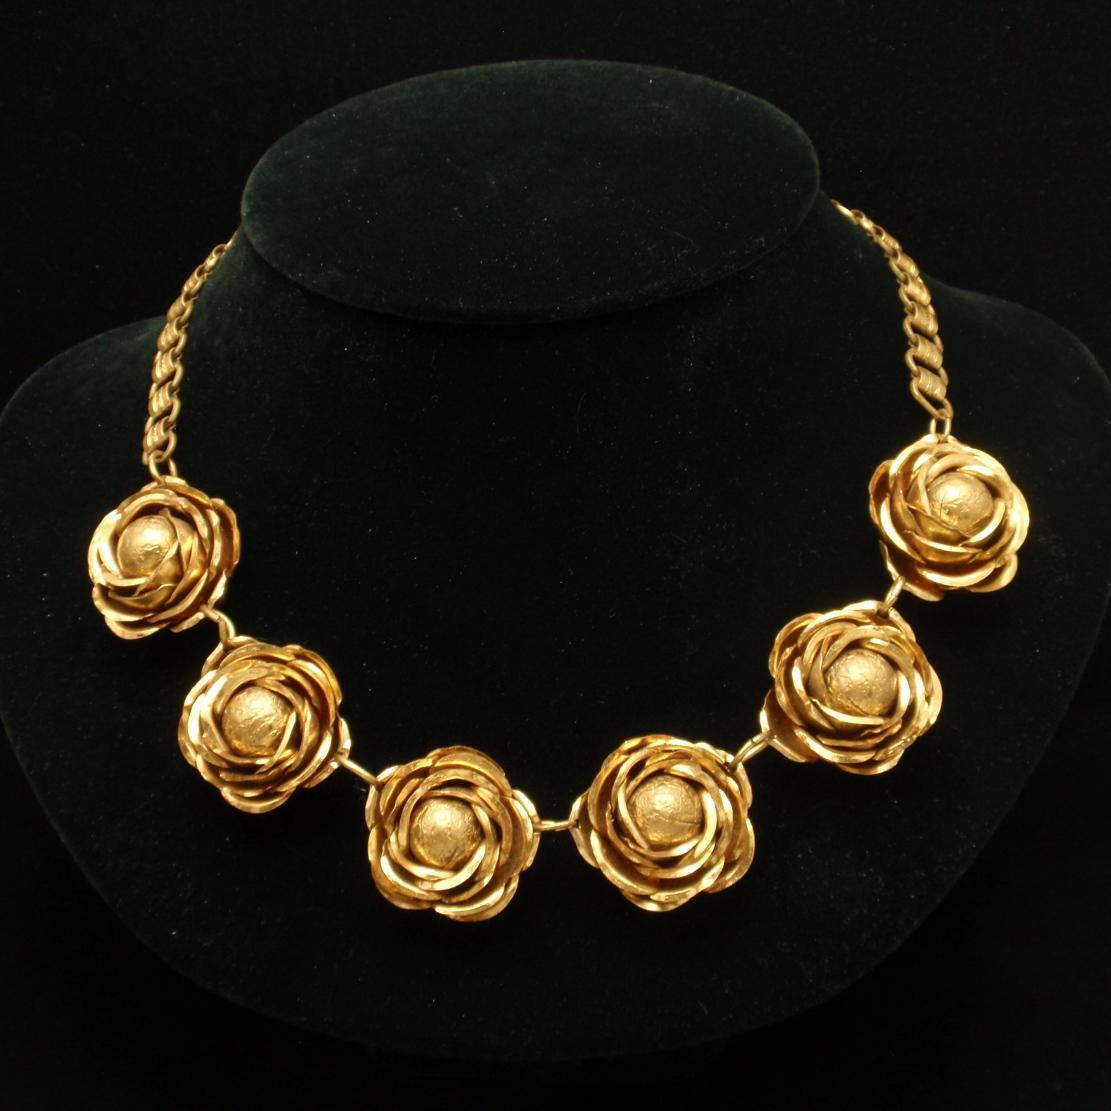 Cabbage Roses Necklace Vintage Gold Tone Metal Modified Bookchain